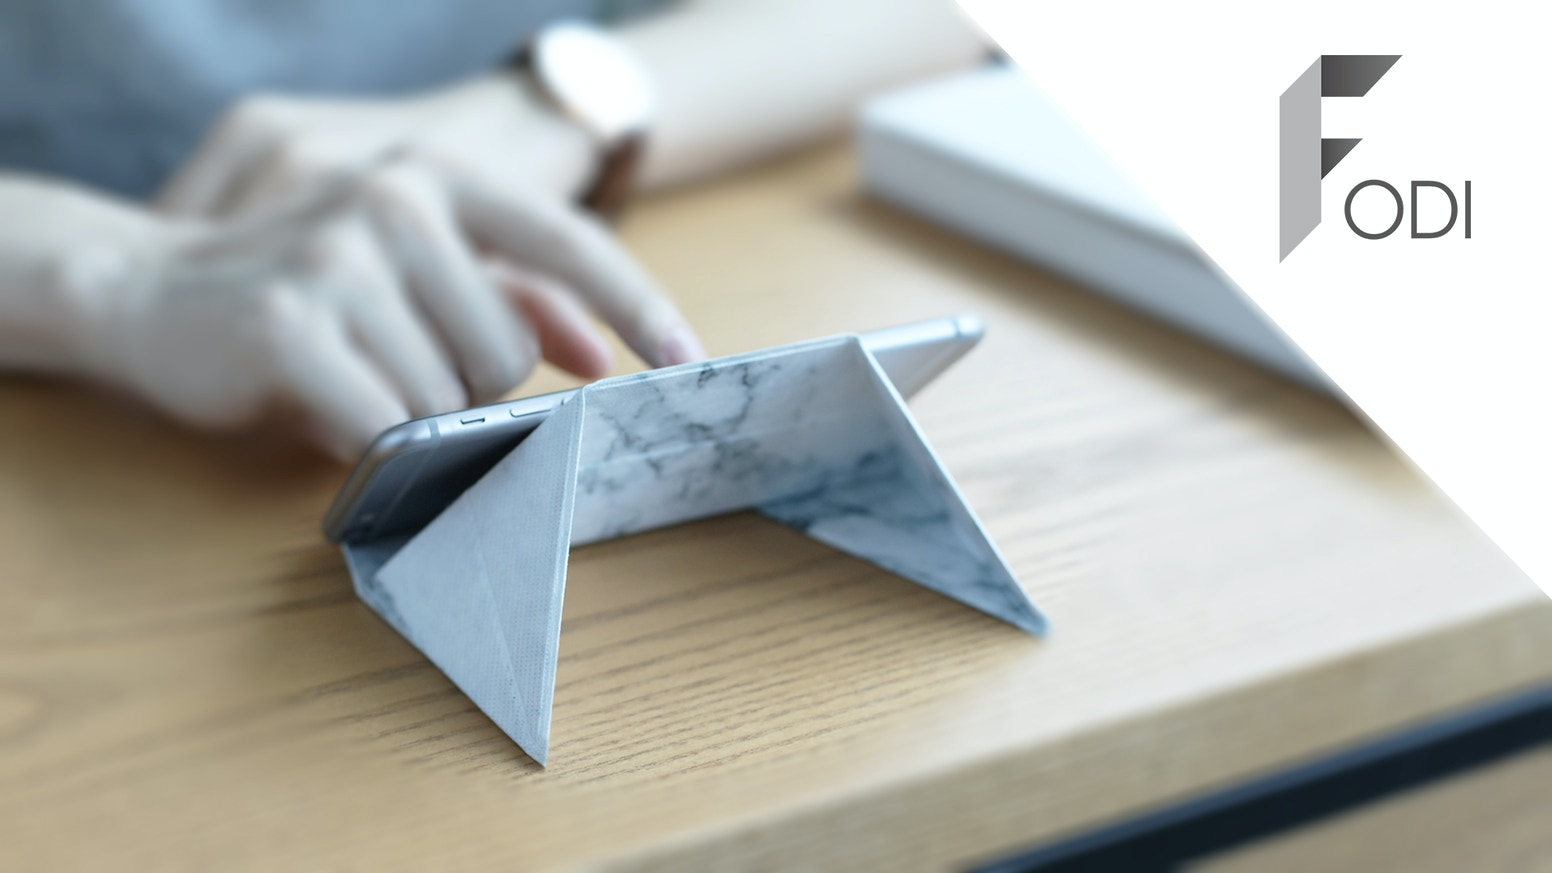 Fodi The Flat Multi Purpose Origami Stand By Kickstarter Origamismallbirddiagramspage1 Is An That Folds To Different Sizes Fit Your Mobile Devices